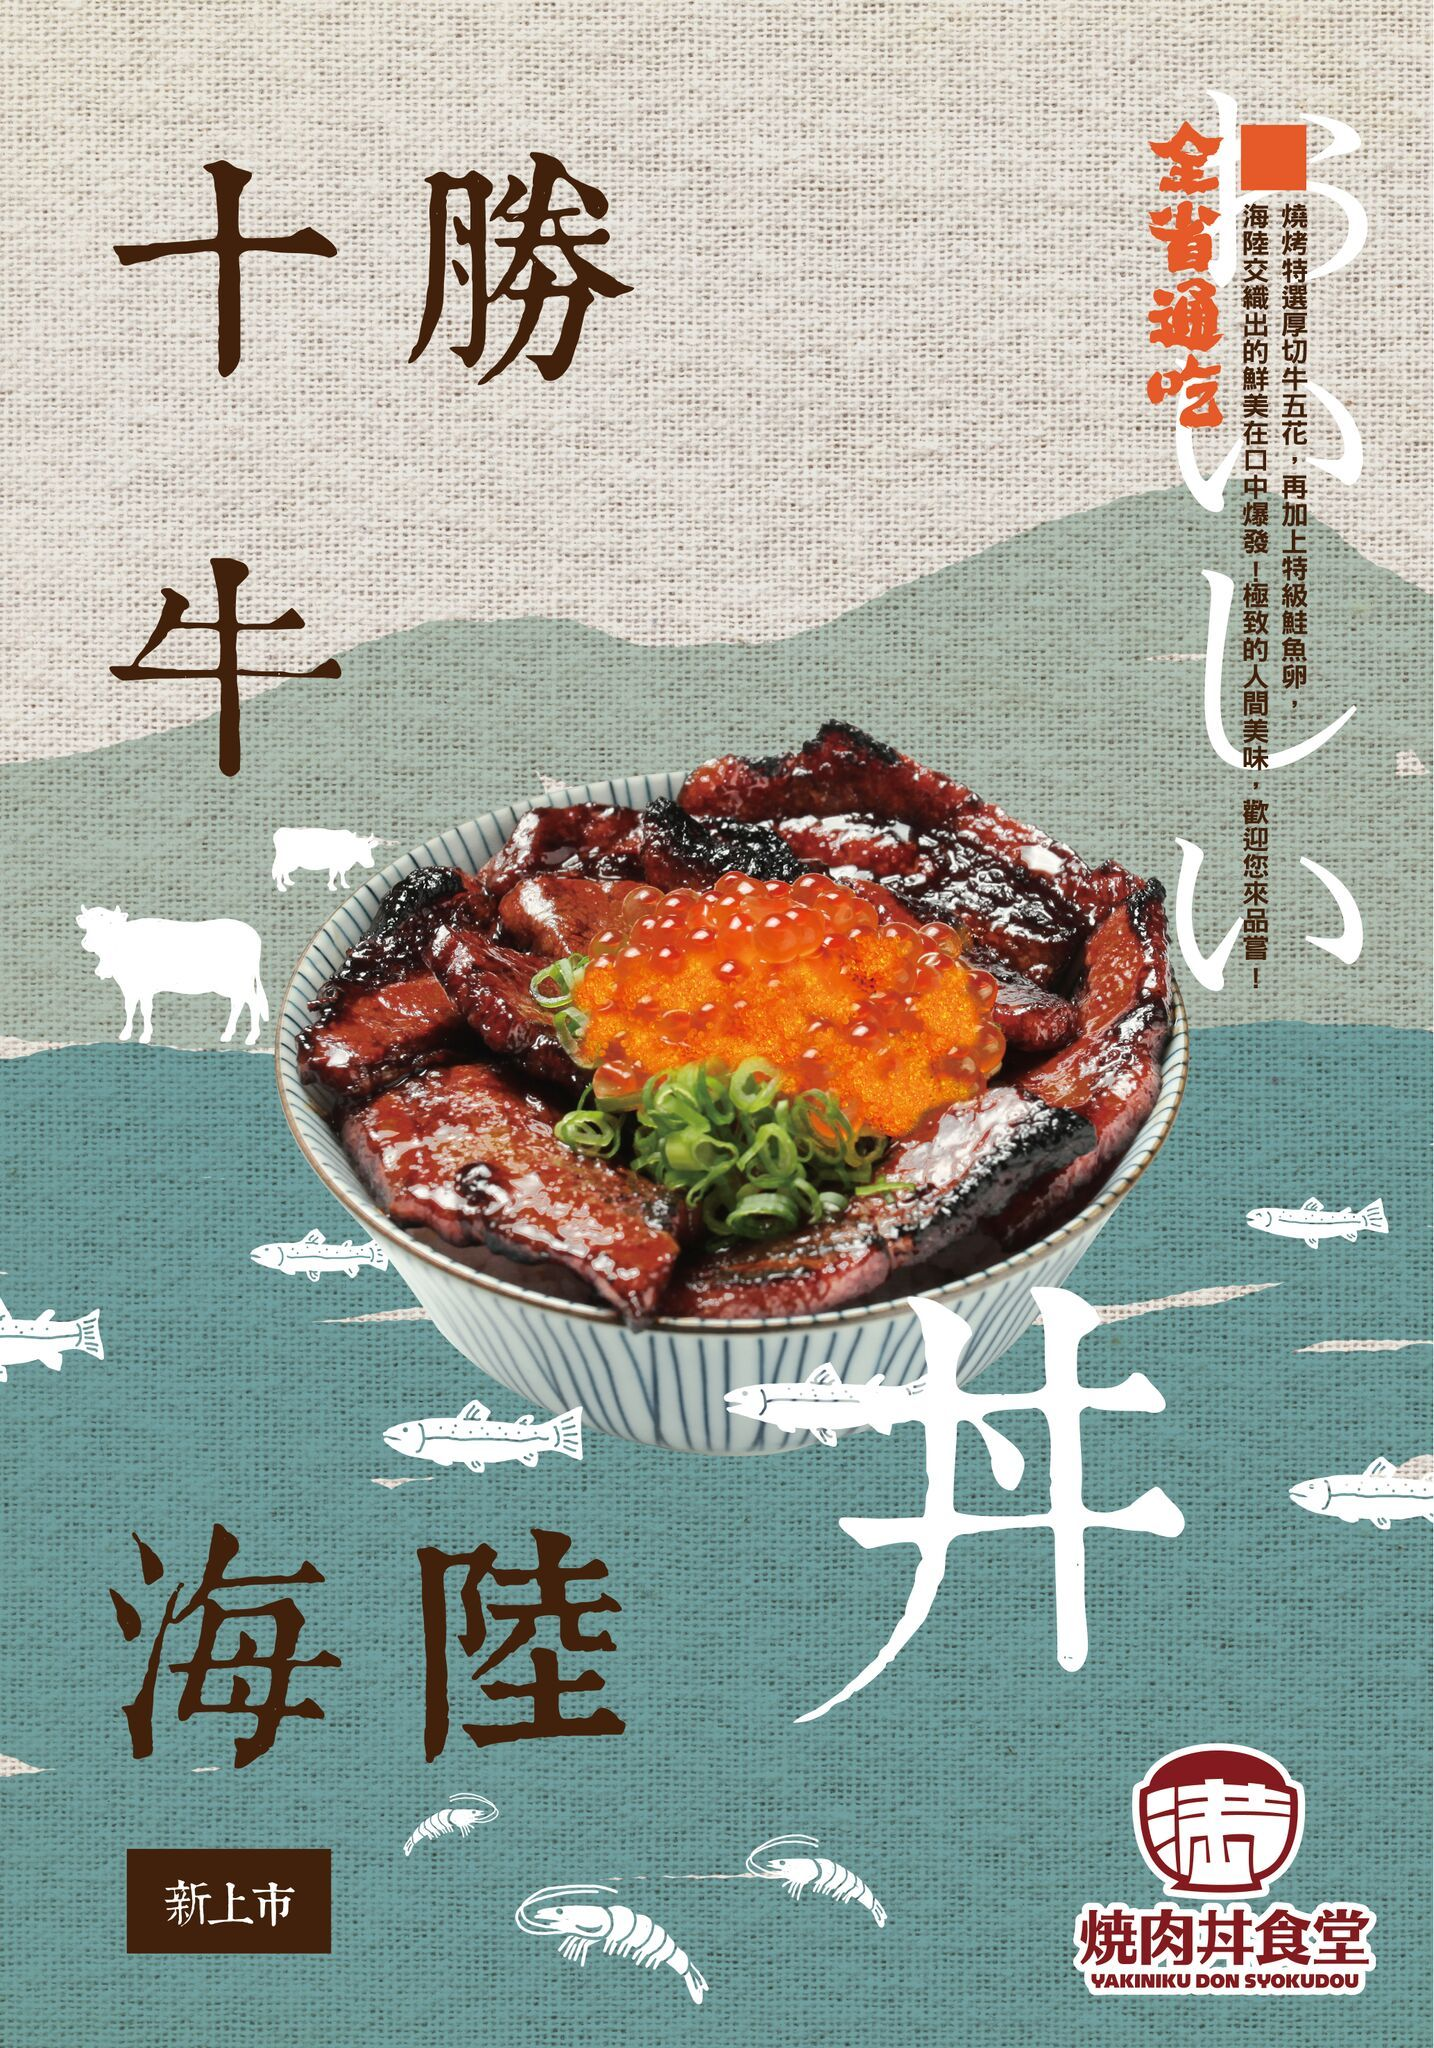 Shisheng turf surf donburi select thick cut beef belly